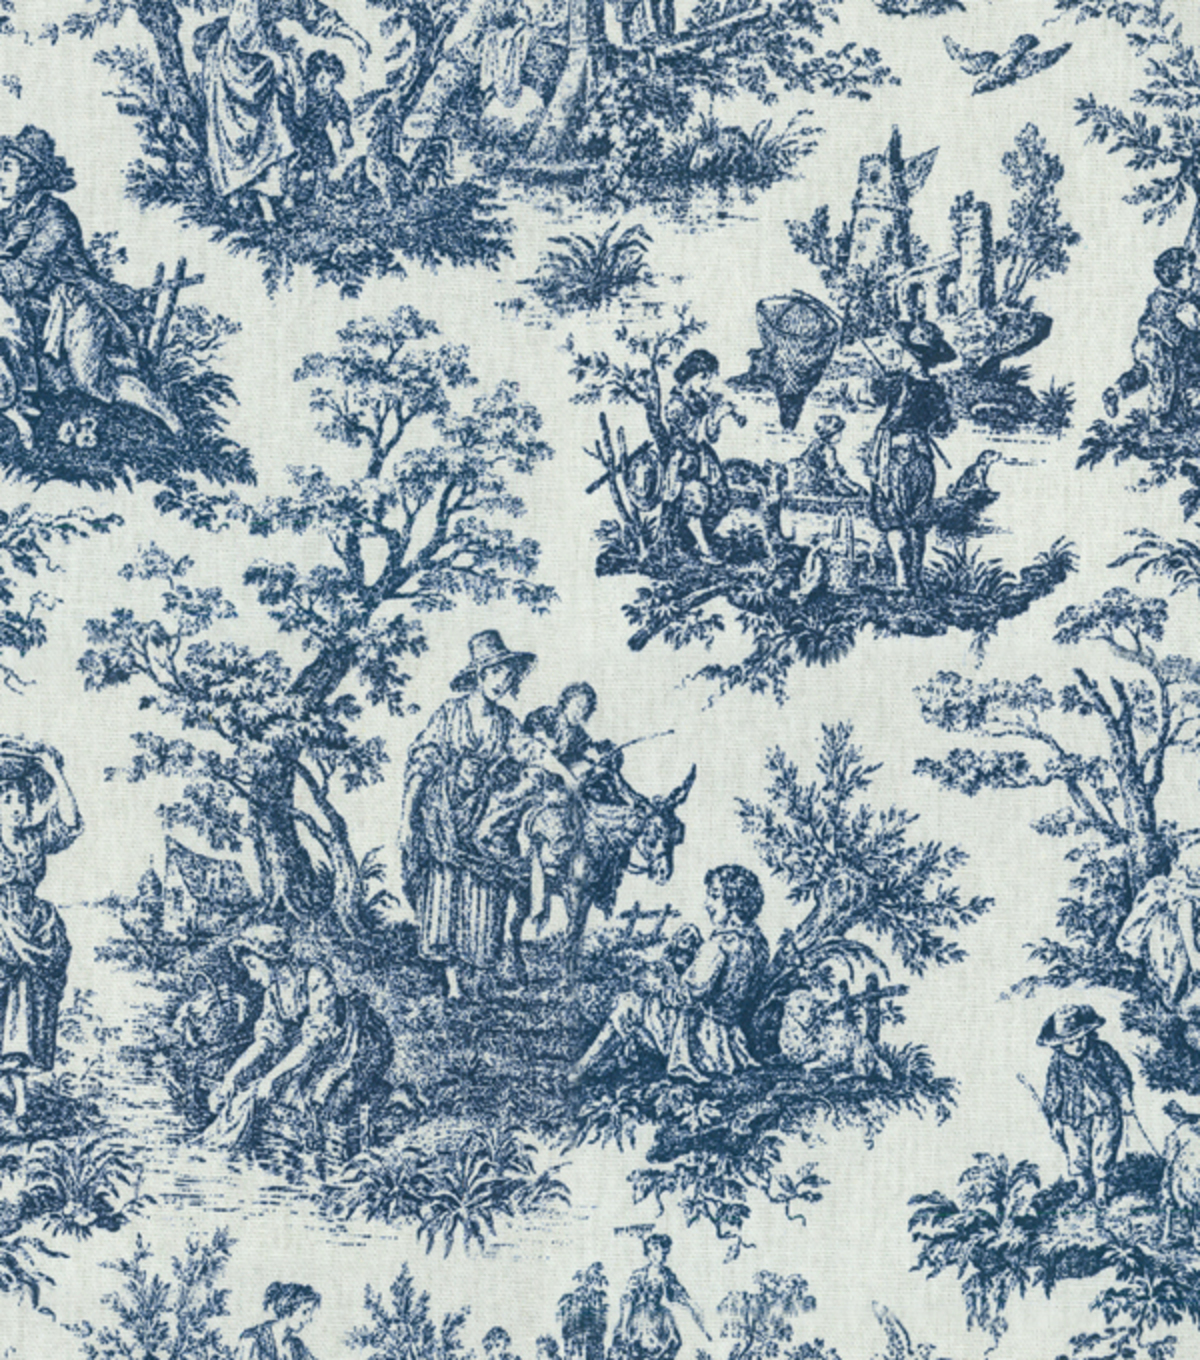 Decorating Ideas Toile Fabric: Home Decor Print Fabric-Waverly Rustic Toile Navy